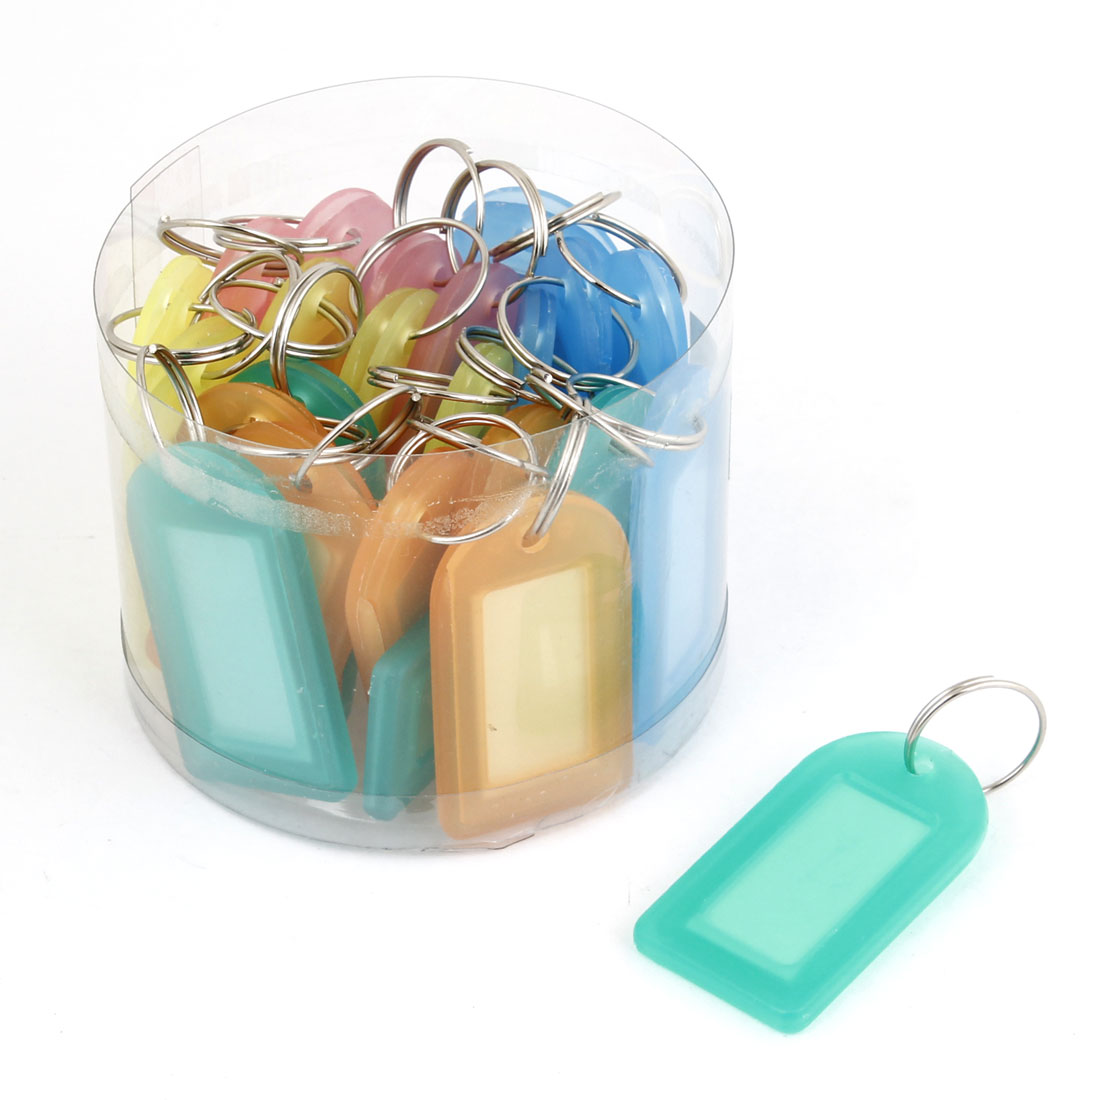 Unique Bargains 25 Pcs Plastic ID Card Name Tag Badge Clip Holder school Office Students Stationery Assorted Color